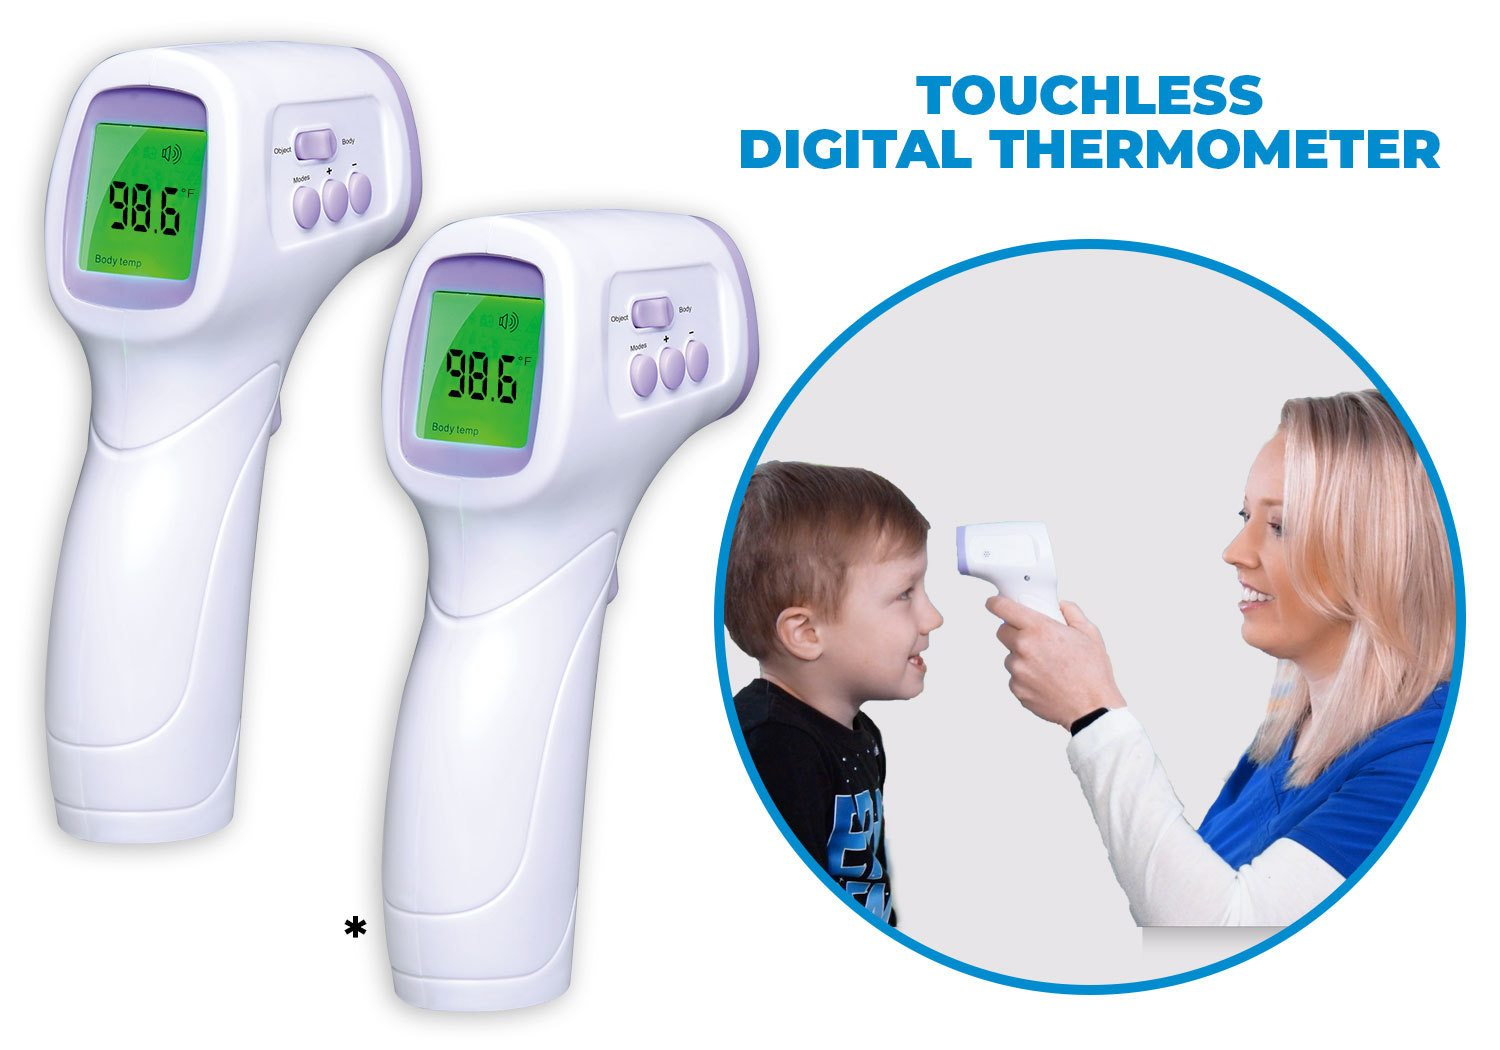 temp a sure double offer - touchless digital thermometer